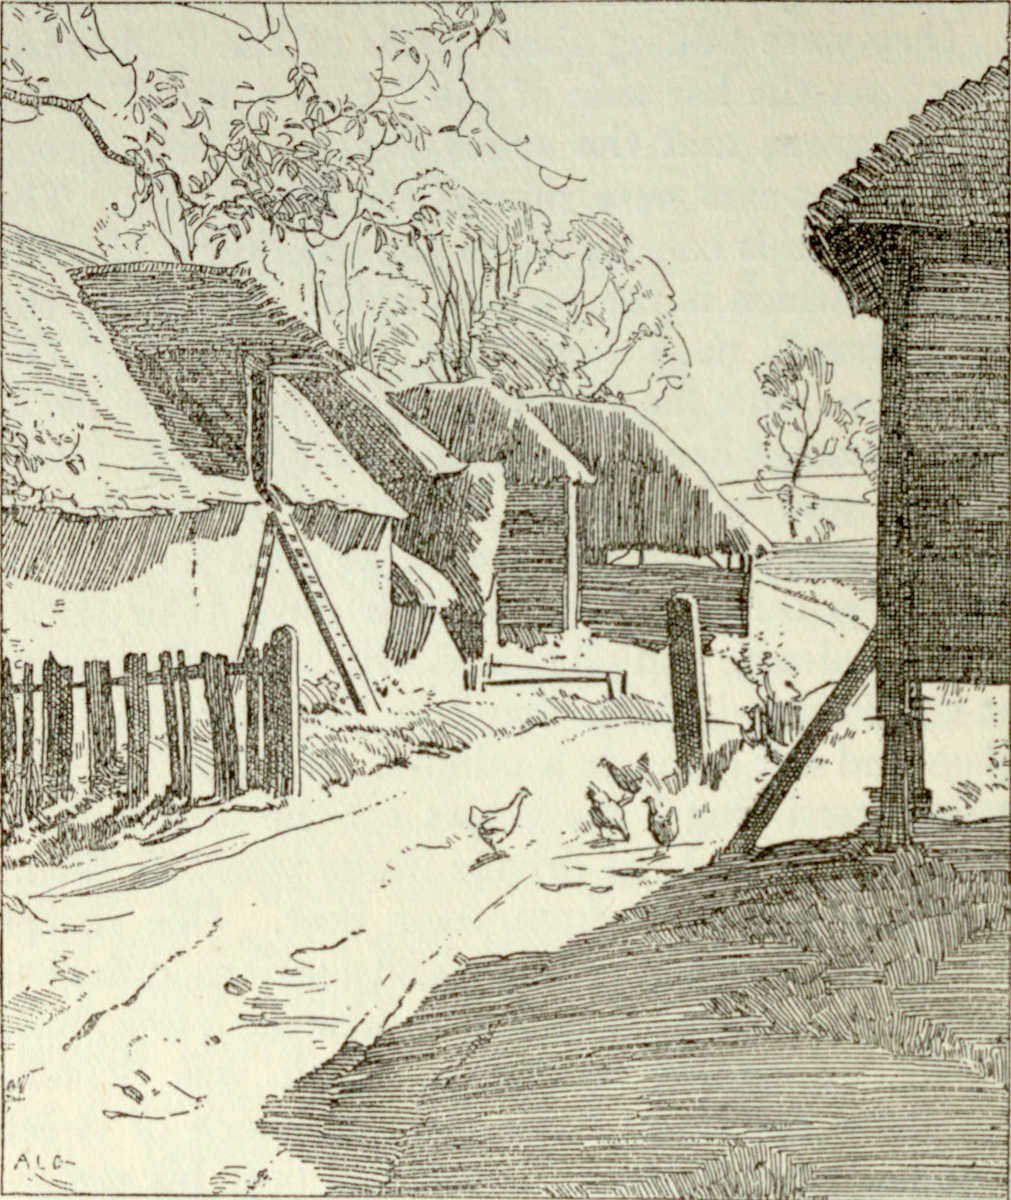 The Project Gutenberg eBook of The Icknield Way, by Edward